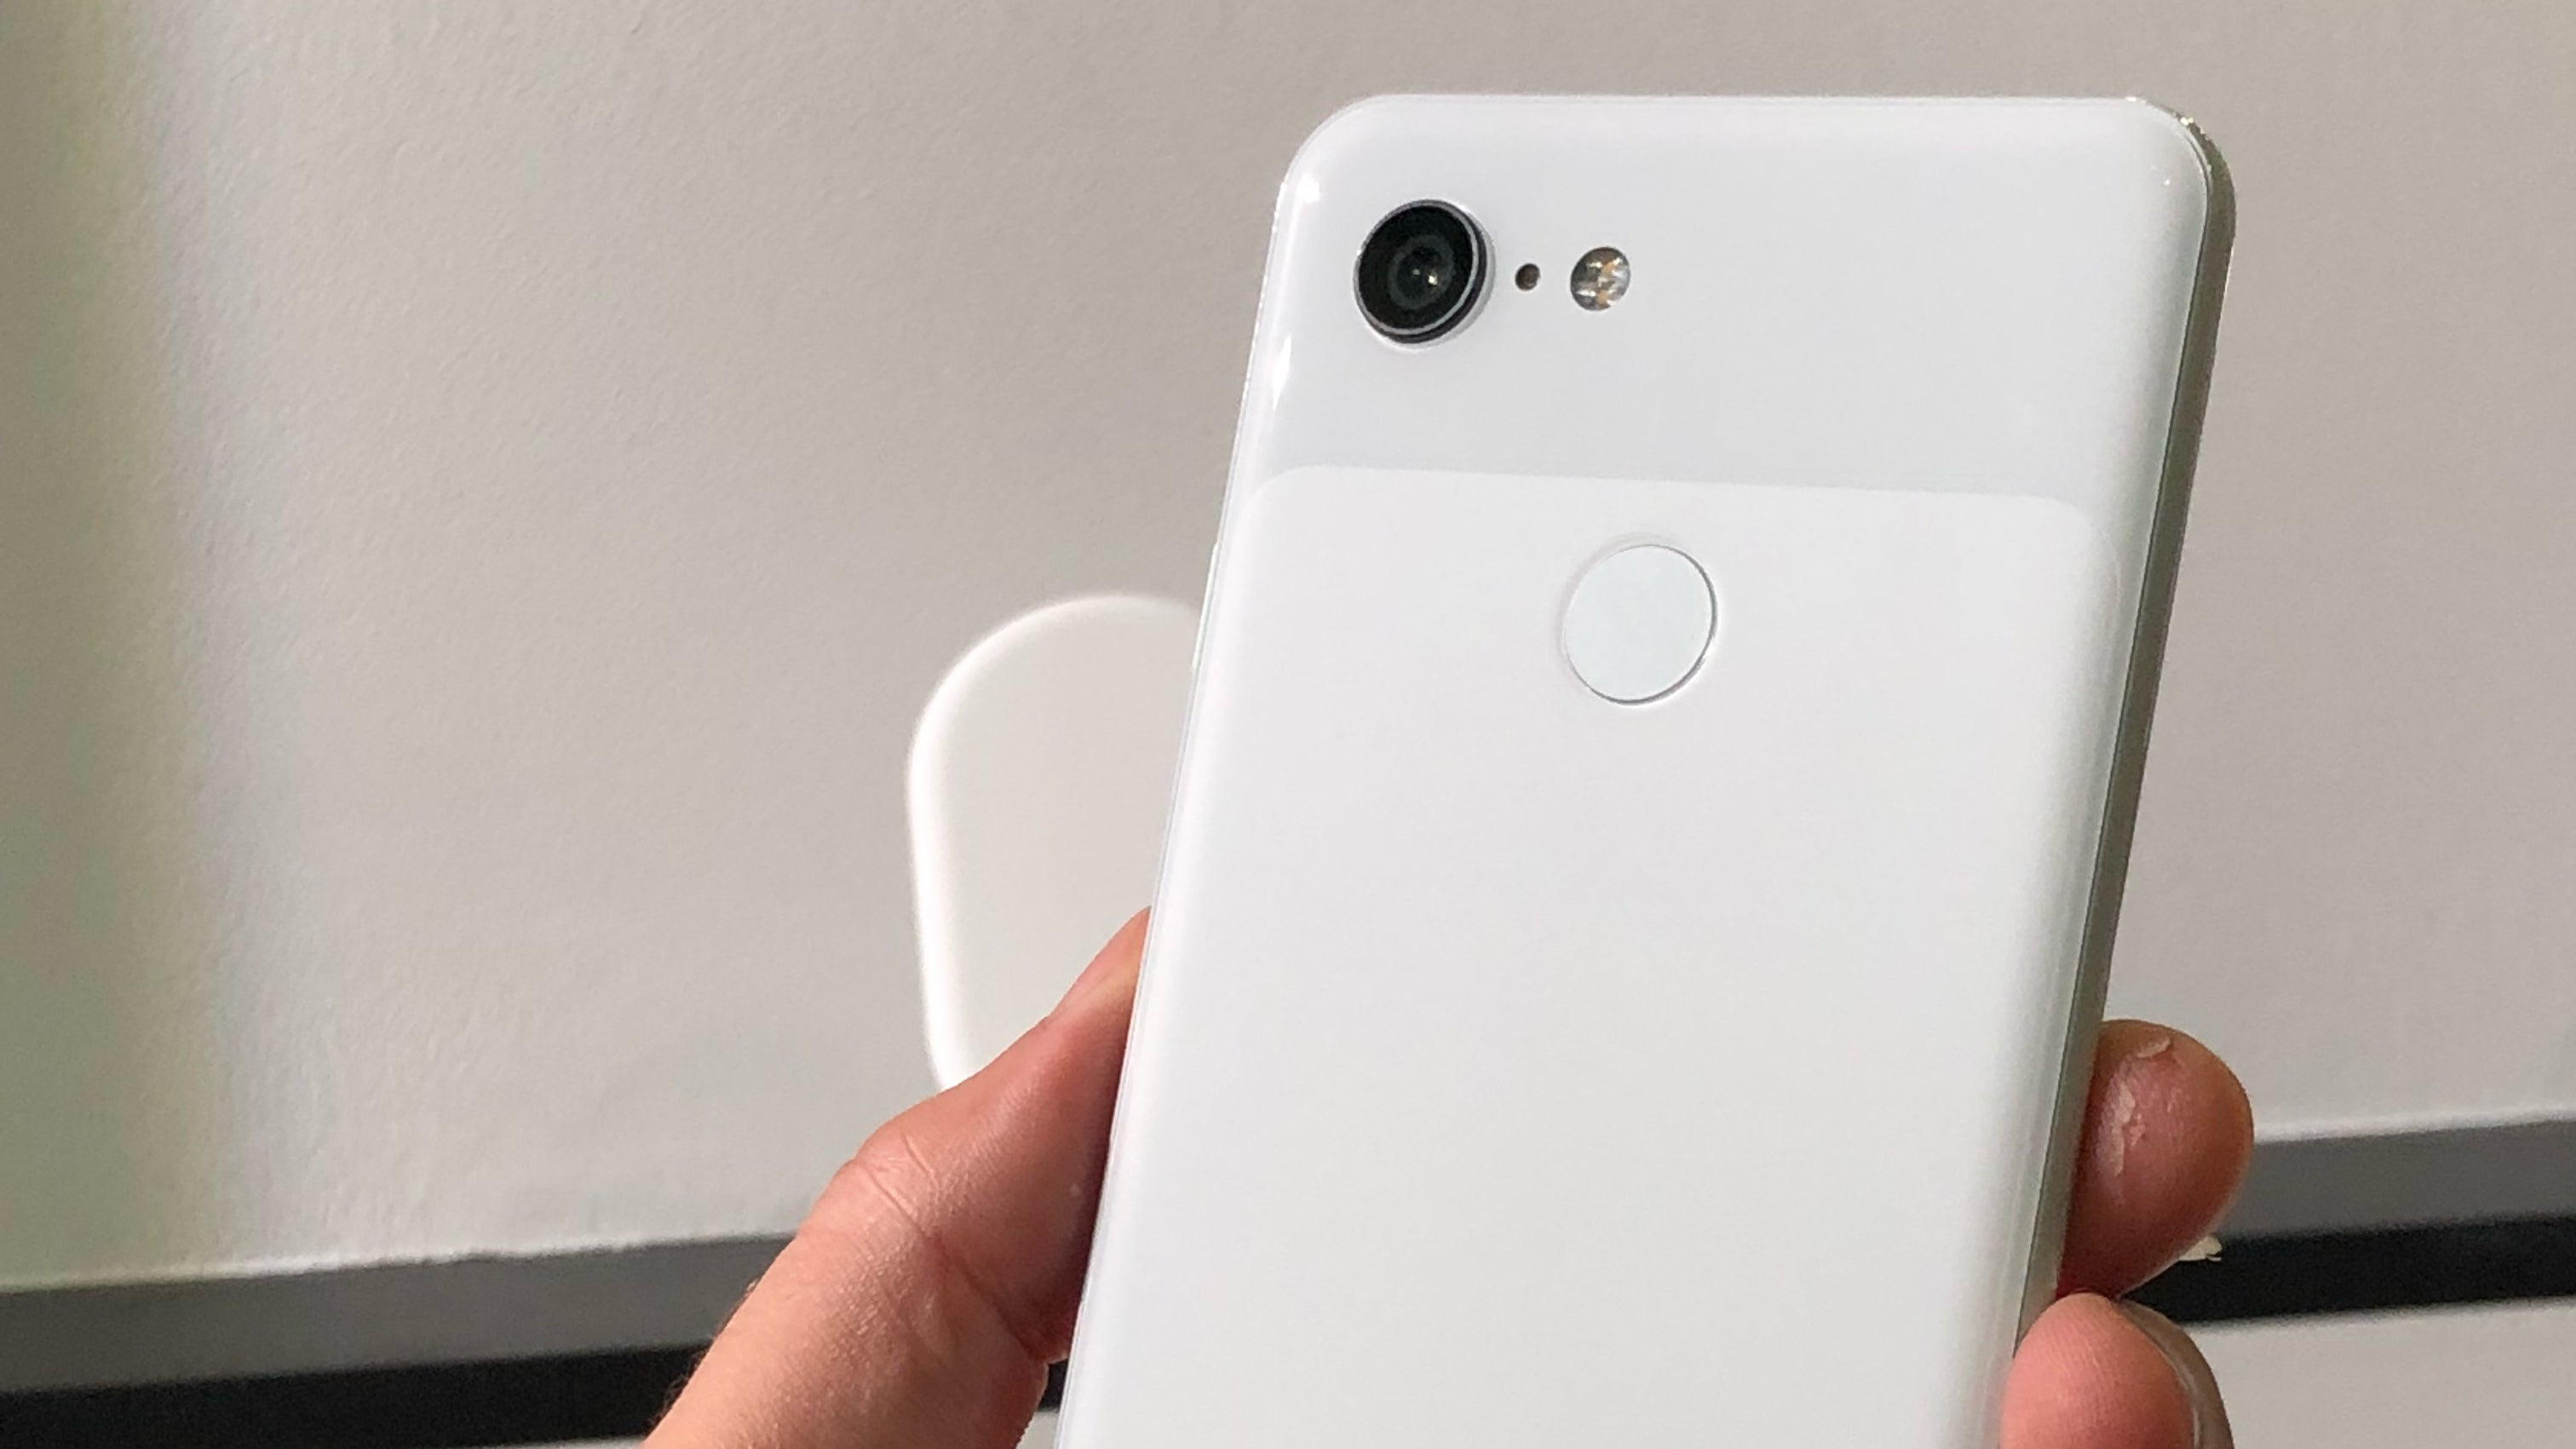 Google Doubles Down On The Pixel's Excellent Camera With A Ton Of New Features